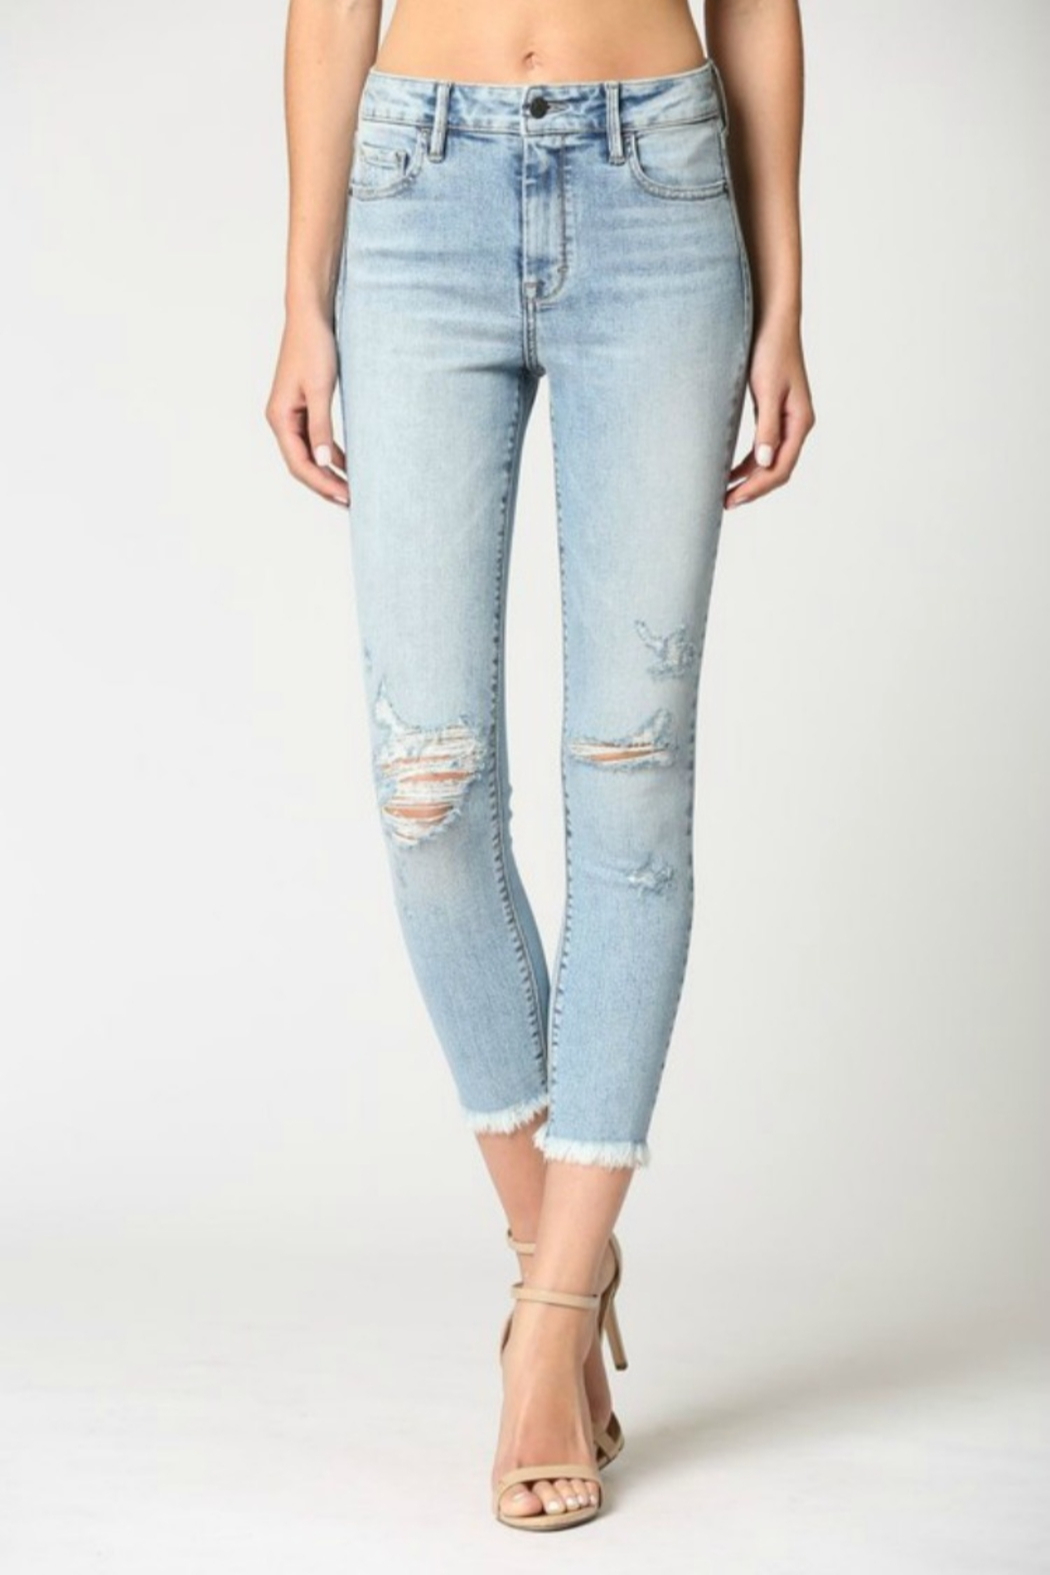 Hidden Jeans Logan Hi Rise Dad Jean w Wrapped Waistband - Front Cropped Image